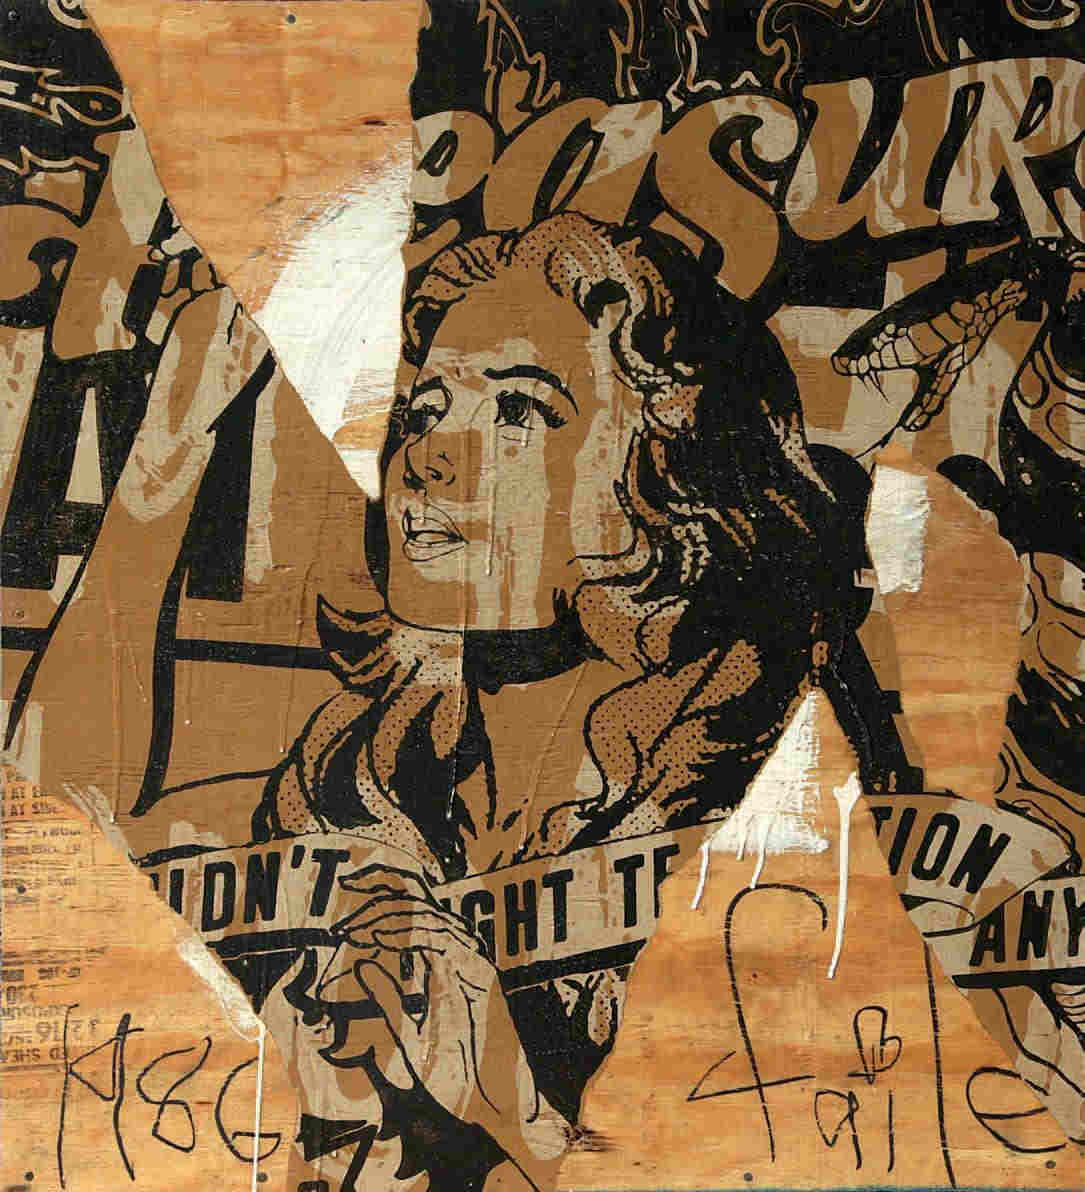 Faile-Sinful Pleasures-2007